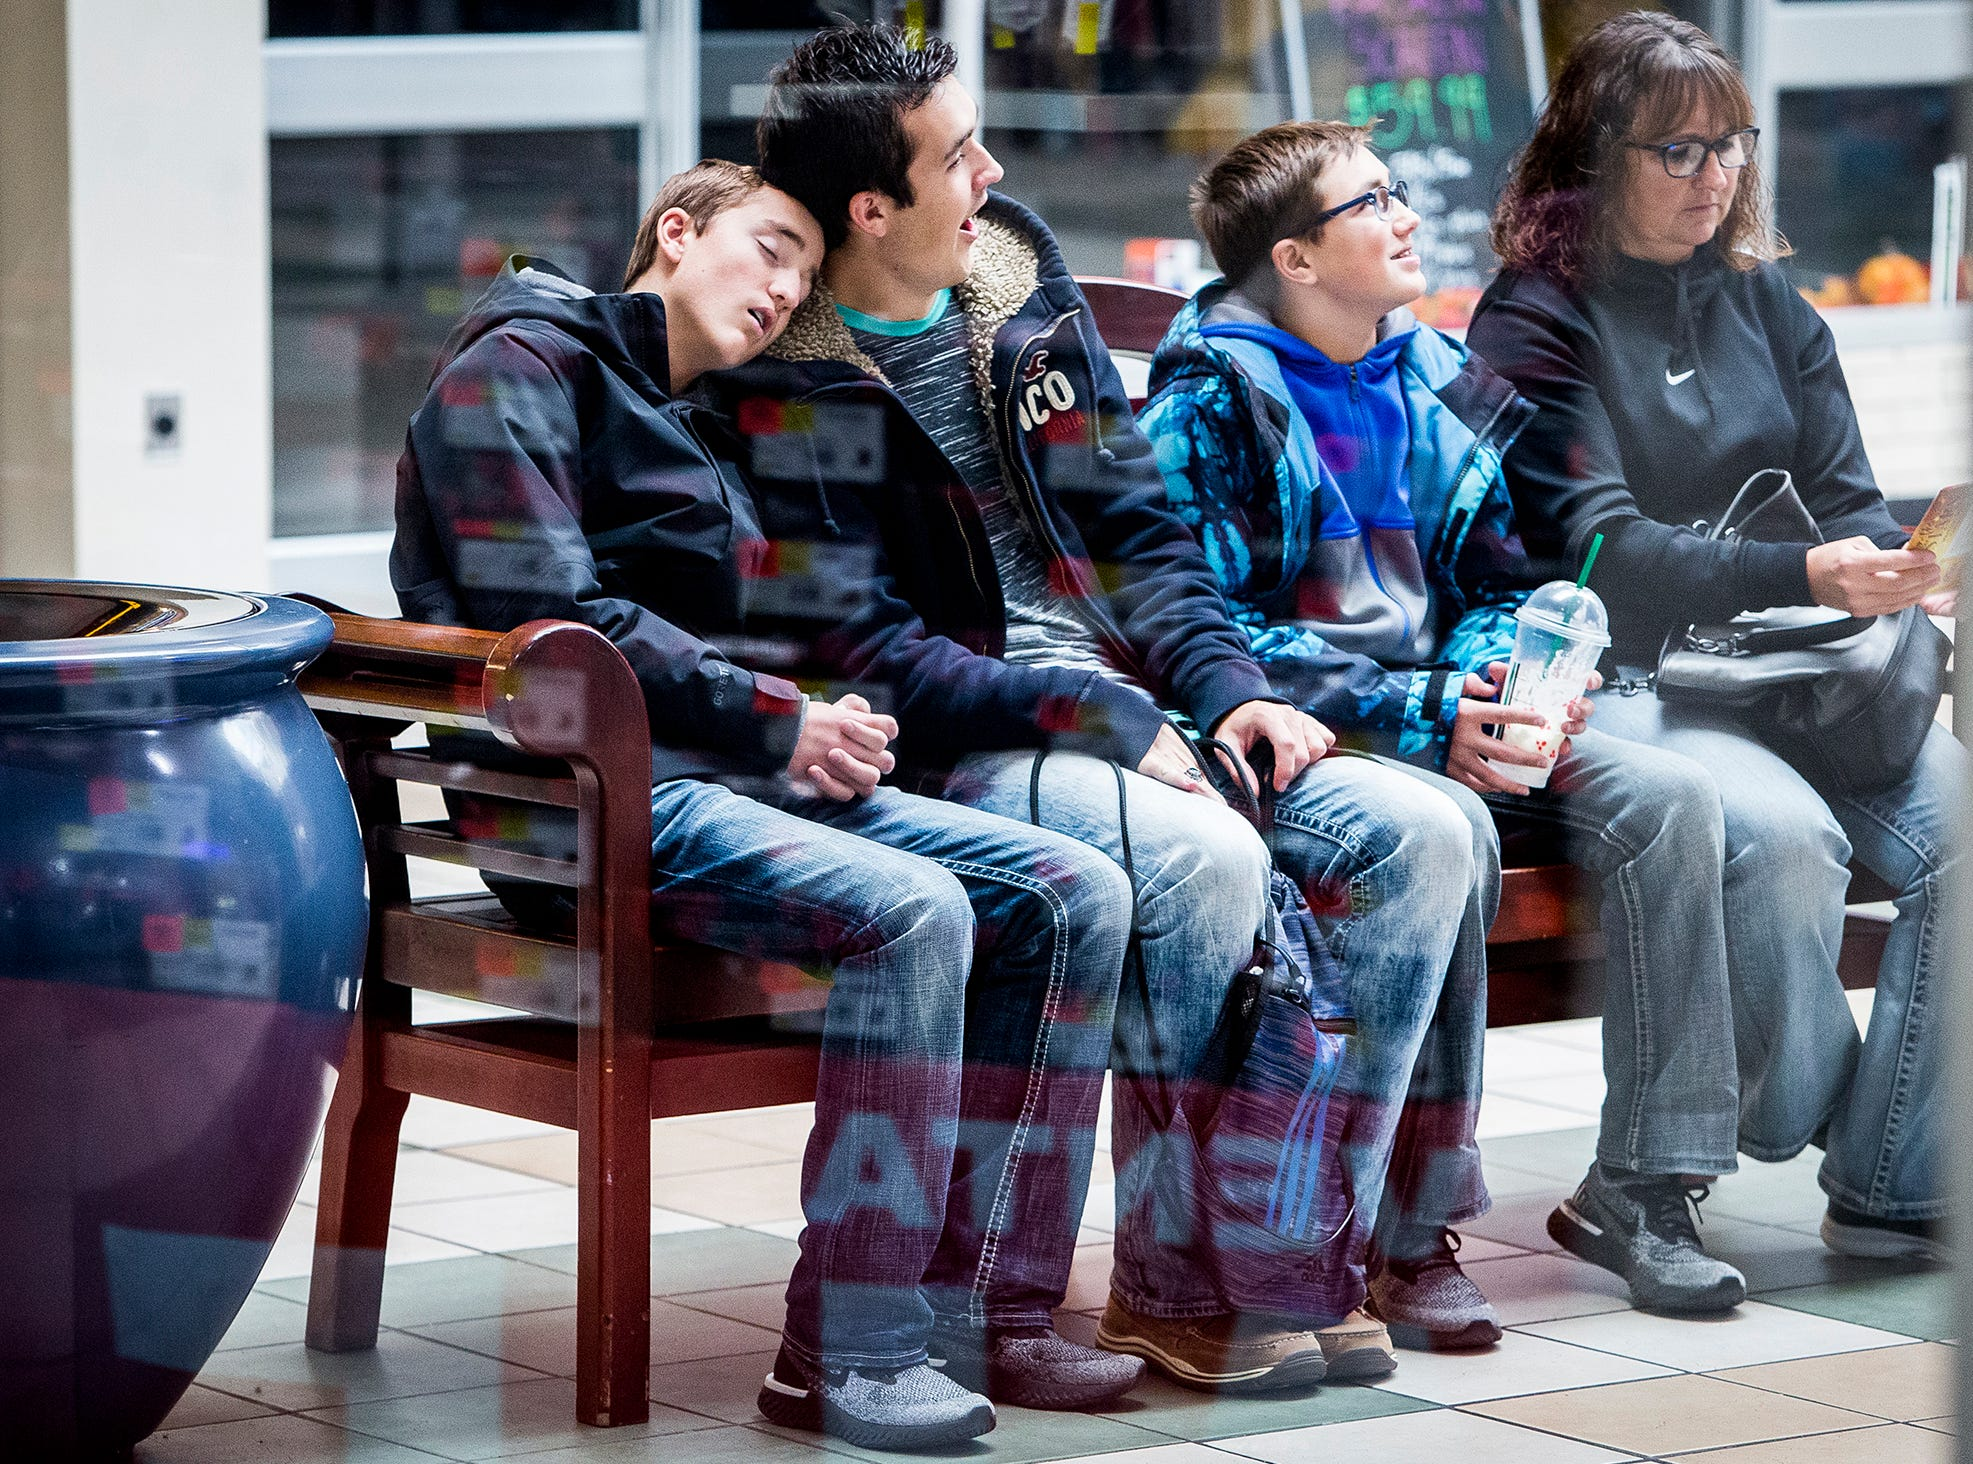 A group of shoppers takes a break at the Muncie Fall on Black Friday.